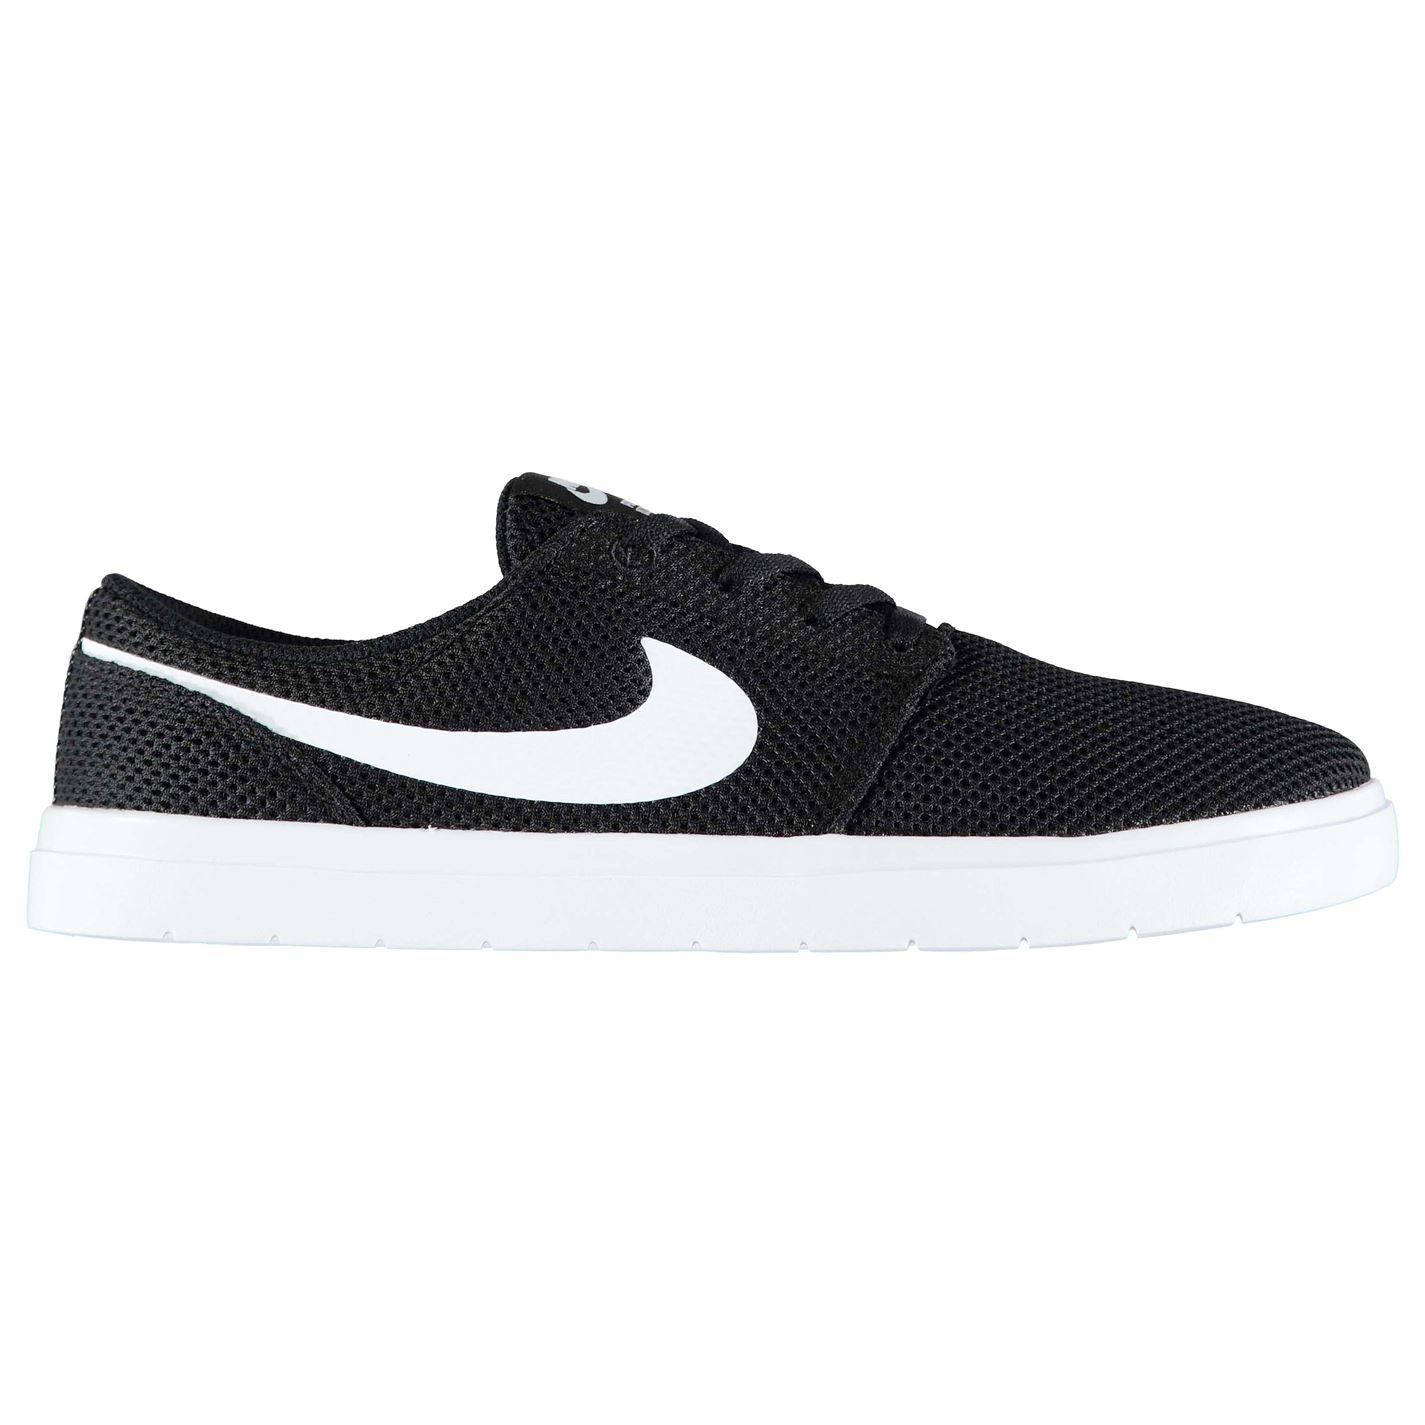 huge discount 1ebd7 473f5 Details about Nike SB Portmore II Ultralight Skate Shoes Mens Black White  Trainers Sneakers